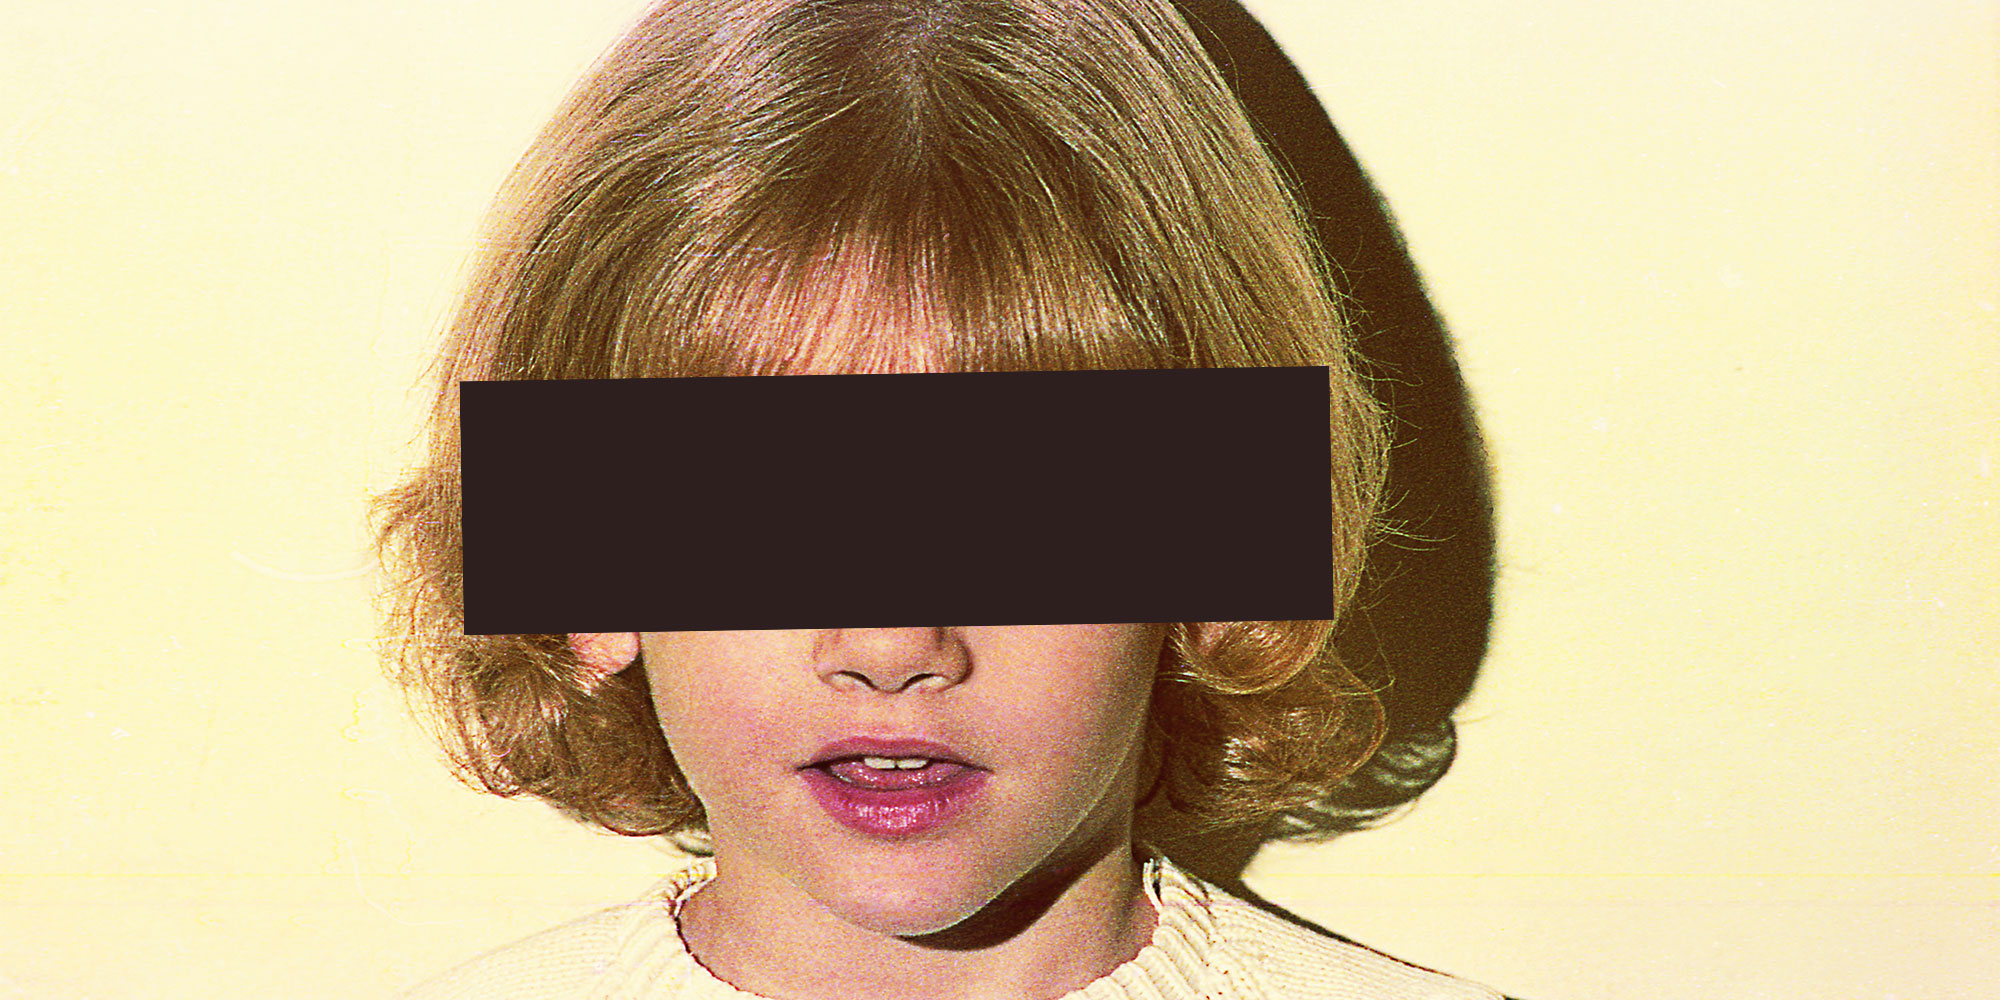 Porn and Incest: My Dark Childhood Abuse By My Grandfather